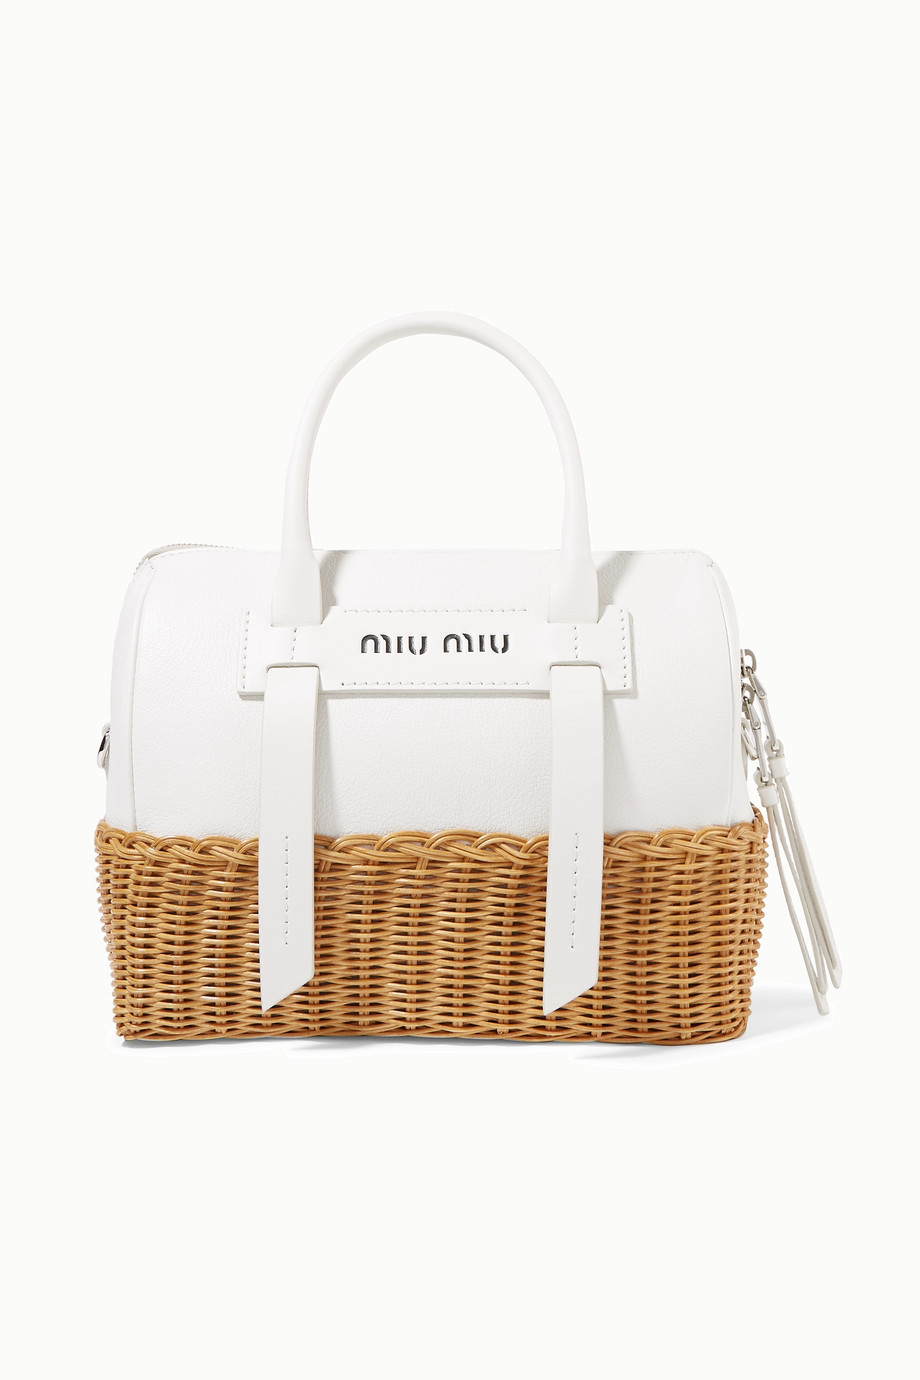 Miu Miu Textured-leather and rattan tote